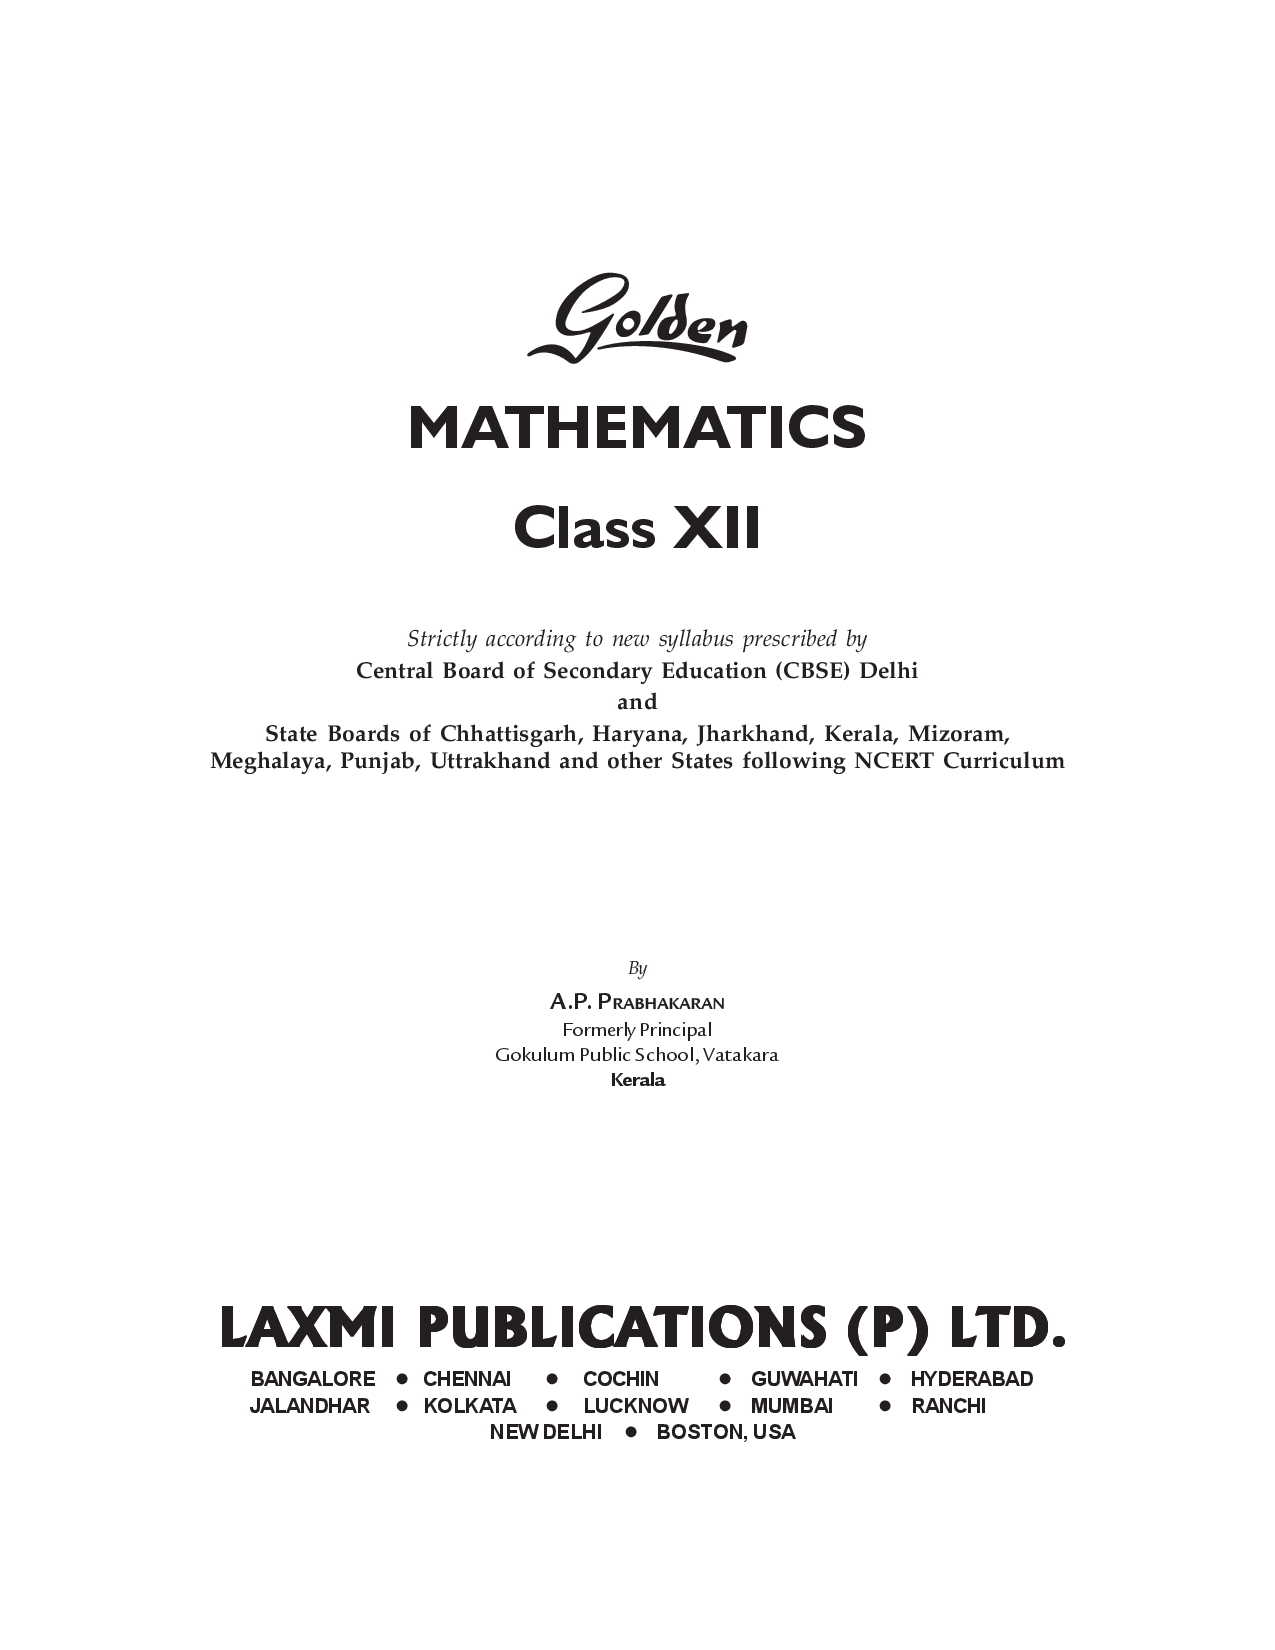 Golden Mathematics Class XII (New Edition) - Page 3